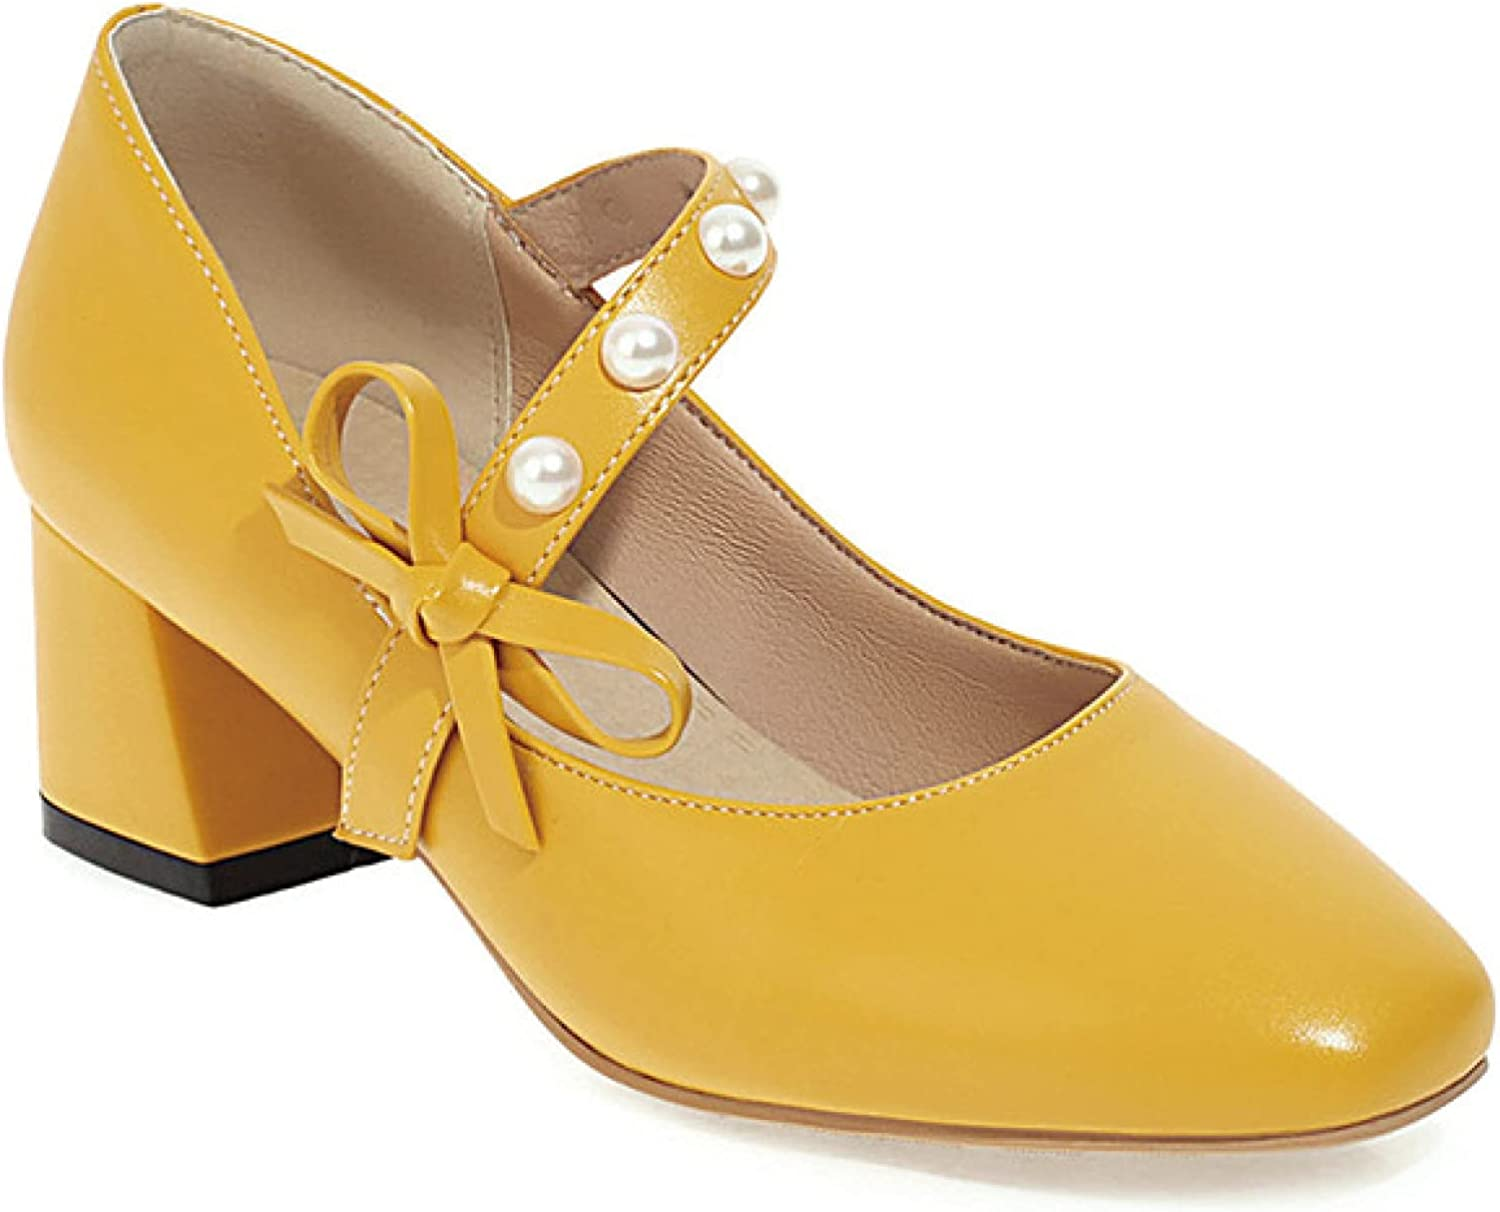 QSCQ Women's Bowknot Bombing new work Square Toe Janes Surprise price Pearl Buckle Mary Elegant